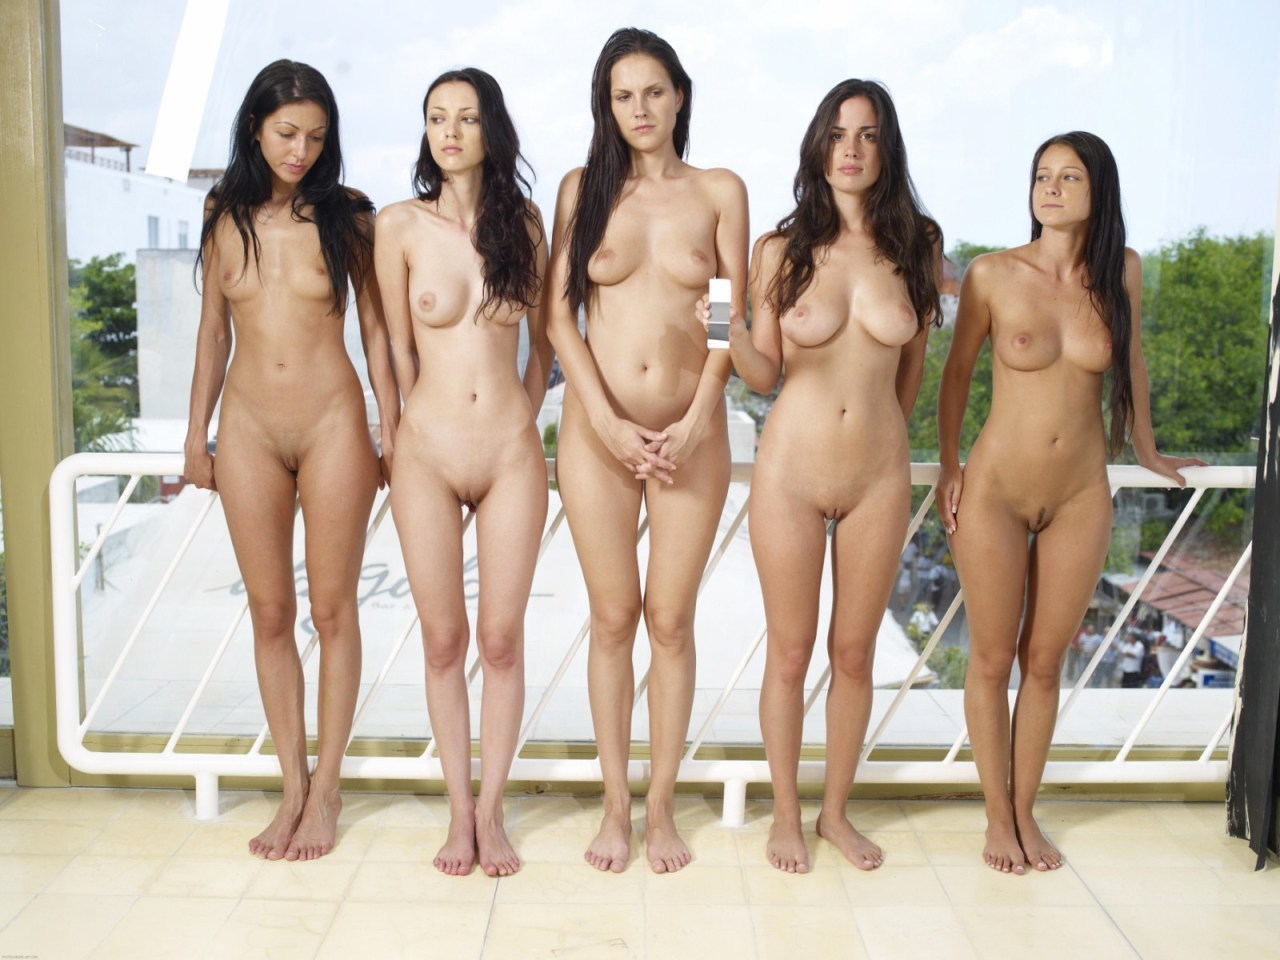 pussy-lesbian-download-shaved-nude-full-movies-for-free-girls-and-hot